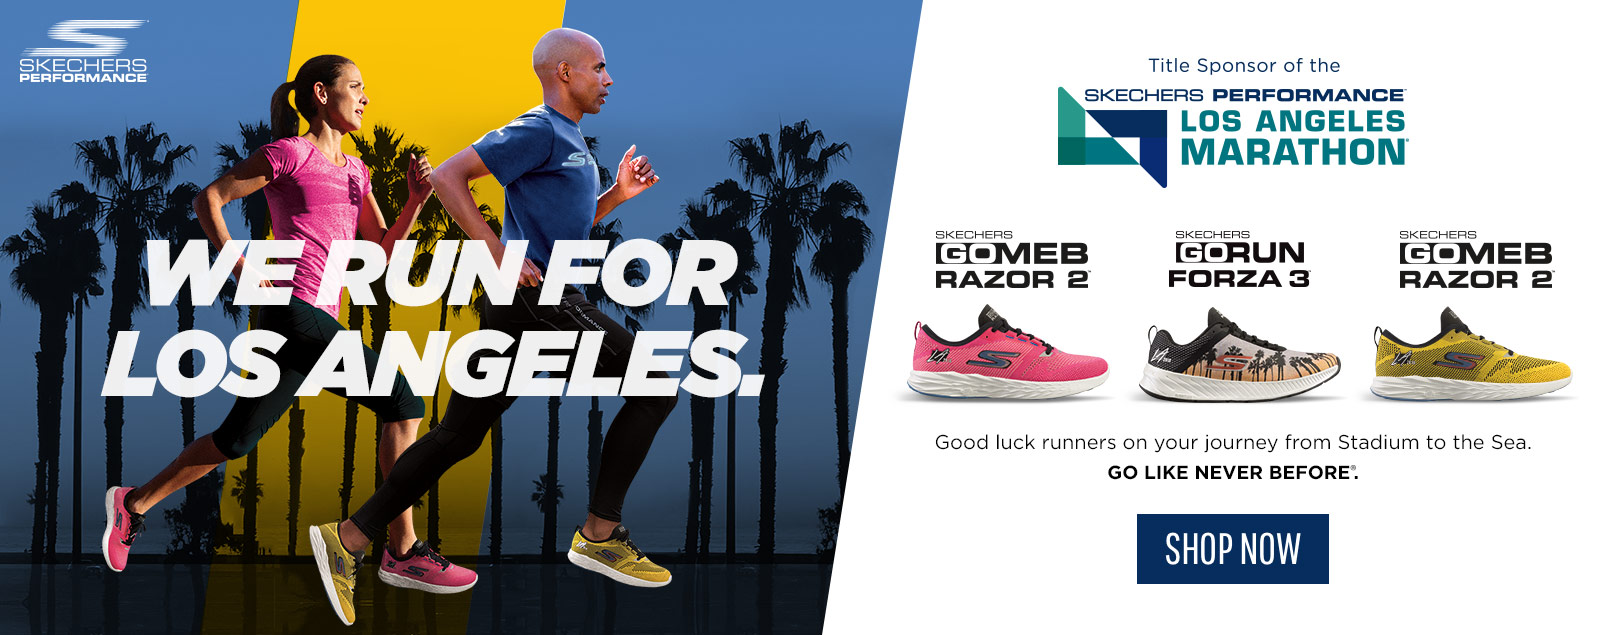 Skechers Performance.  Official Shoe and Apparel Sponsor of the 2018 Los Angeles Marathon. We run for Los Angeles.